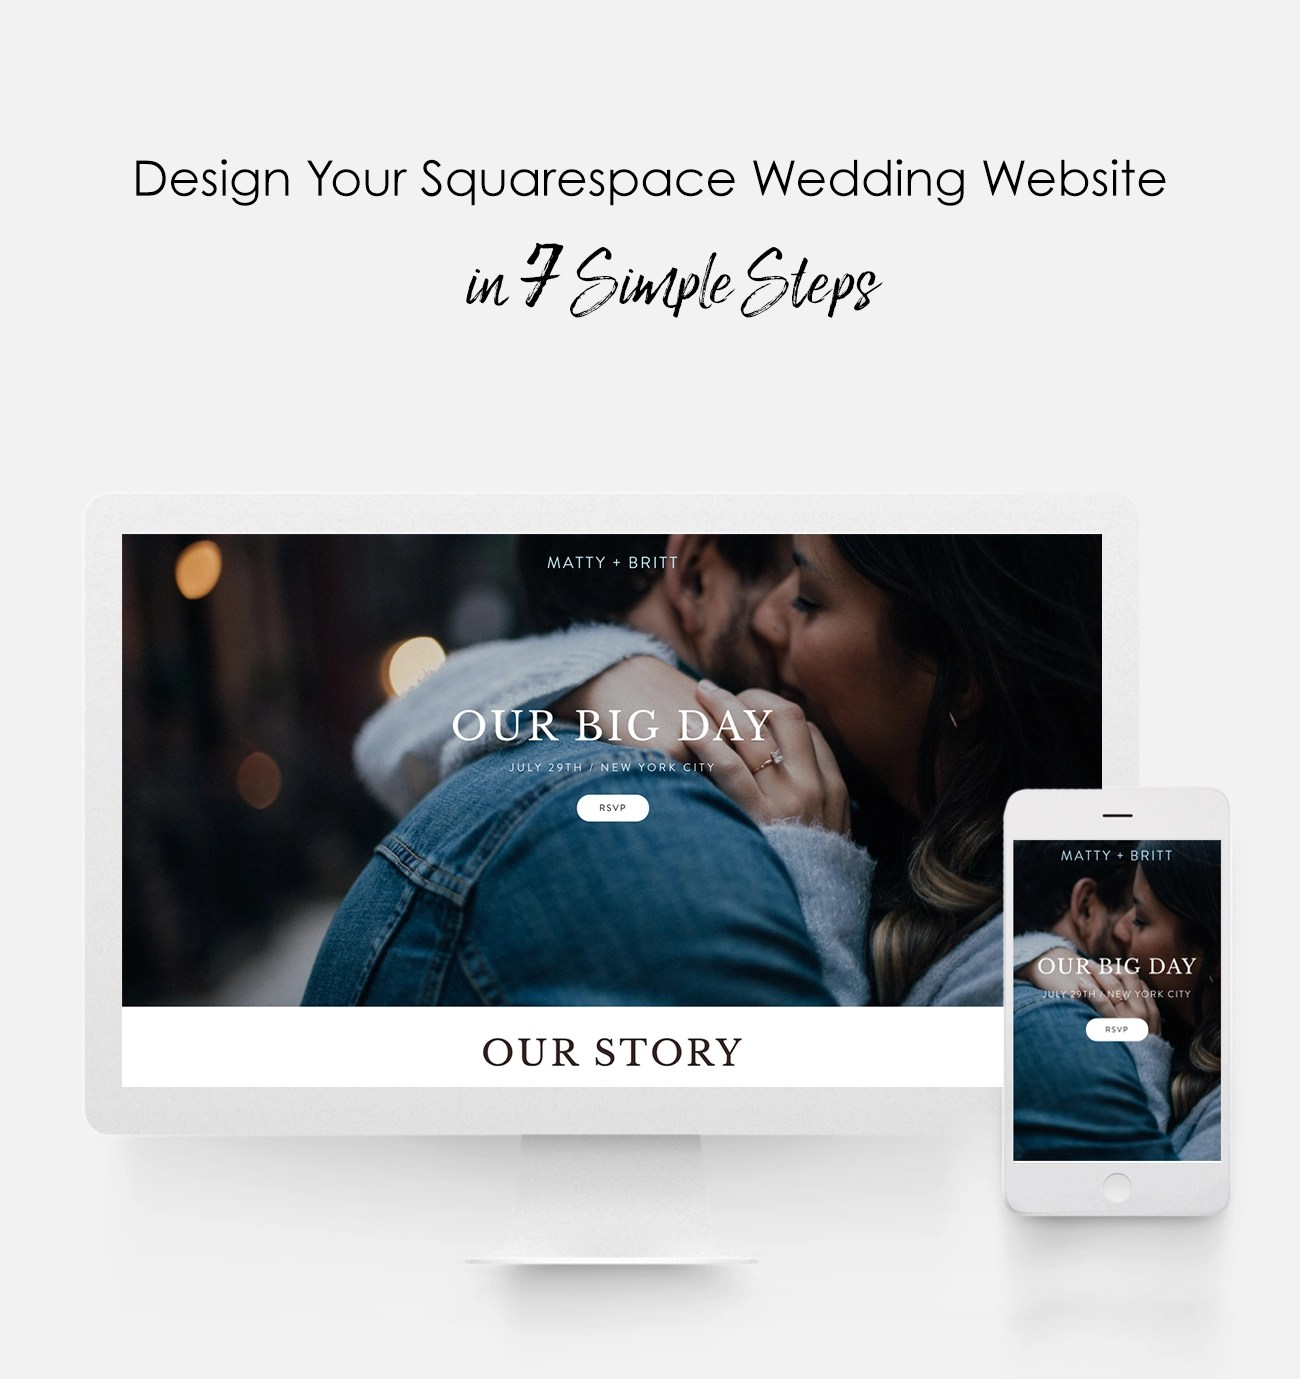 Design Your Squarespace Wedding Website in 7 Simple Steps   Green     Design Your Squarespace Wedding Website in 7 Simple Steps